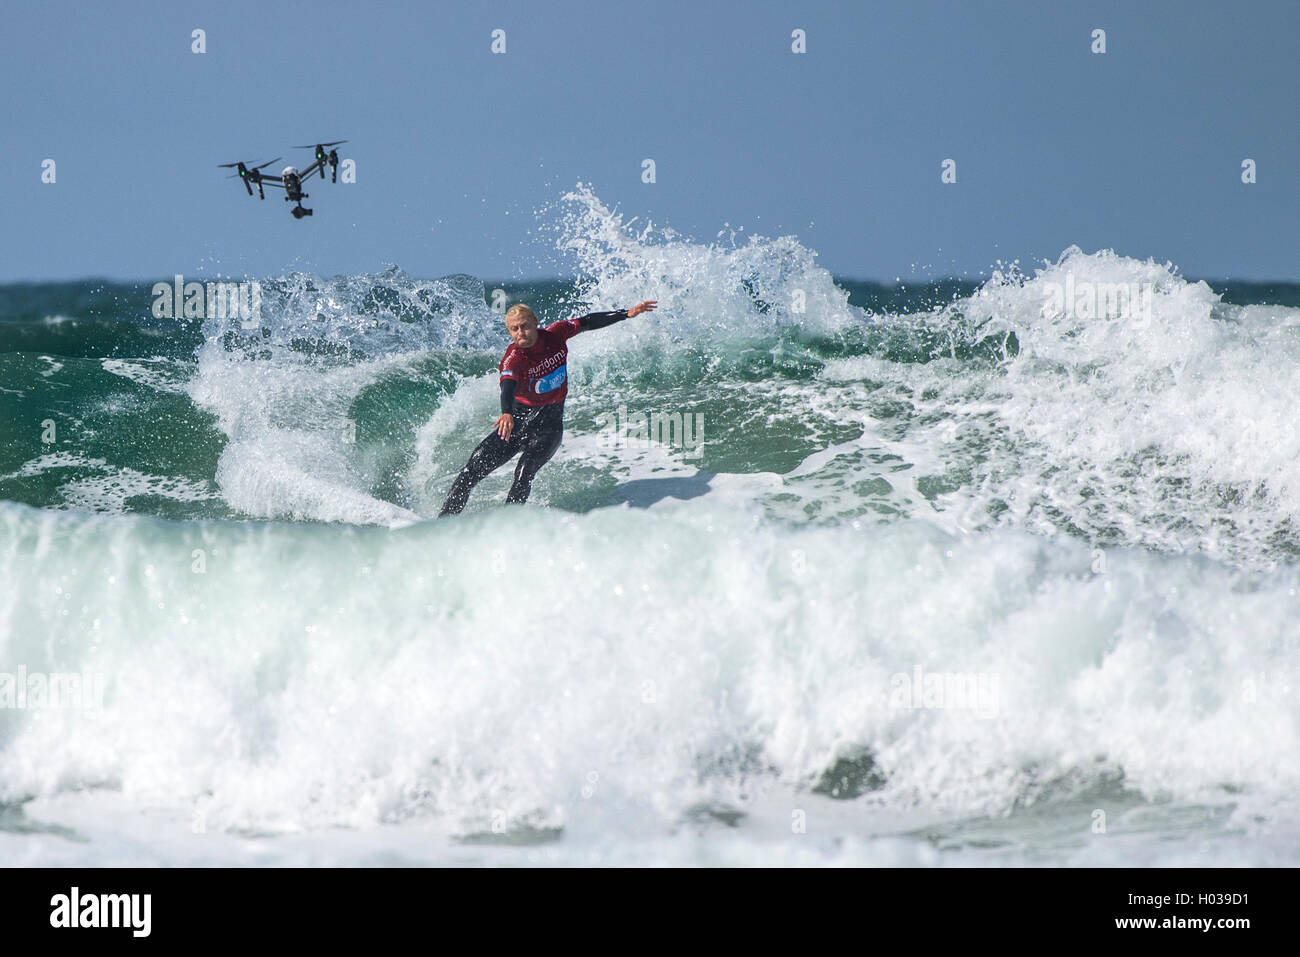 A drone films a competitor in action at the Surfing GB Inter-Clubs Surfing Competition at Fistral in Newquay, Cornwall. - Stock Image